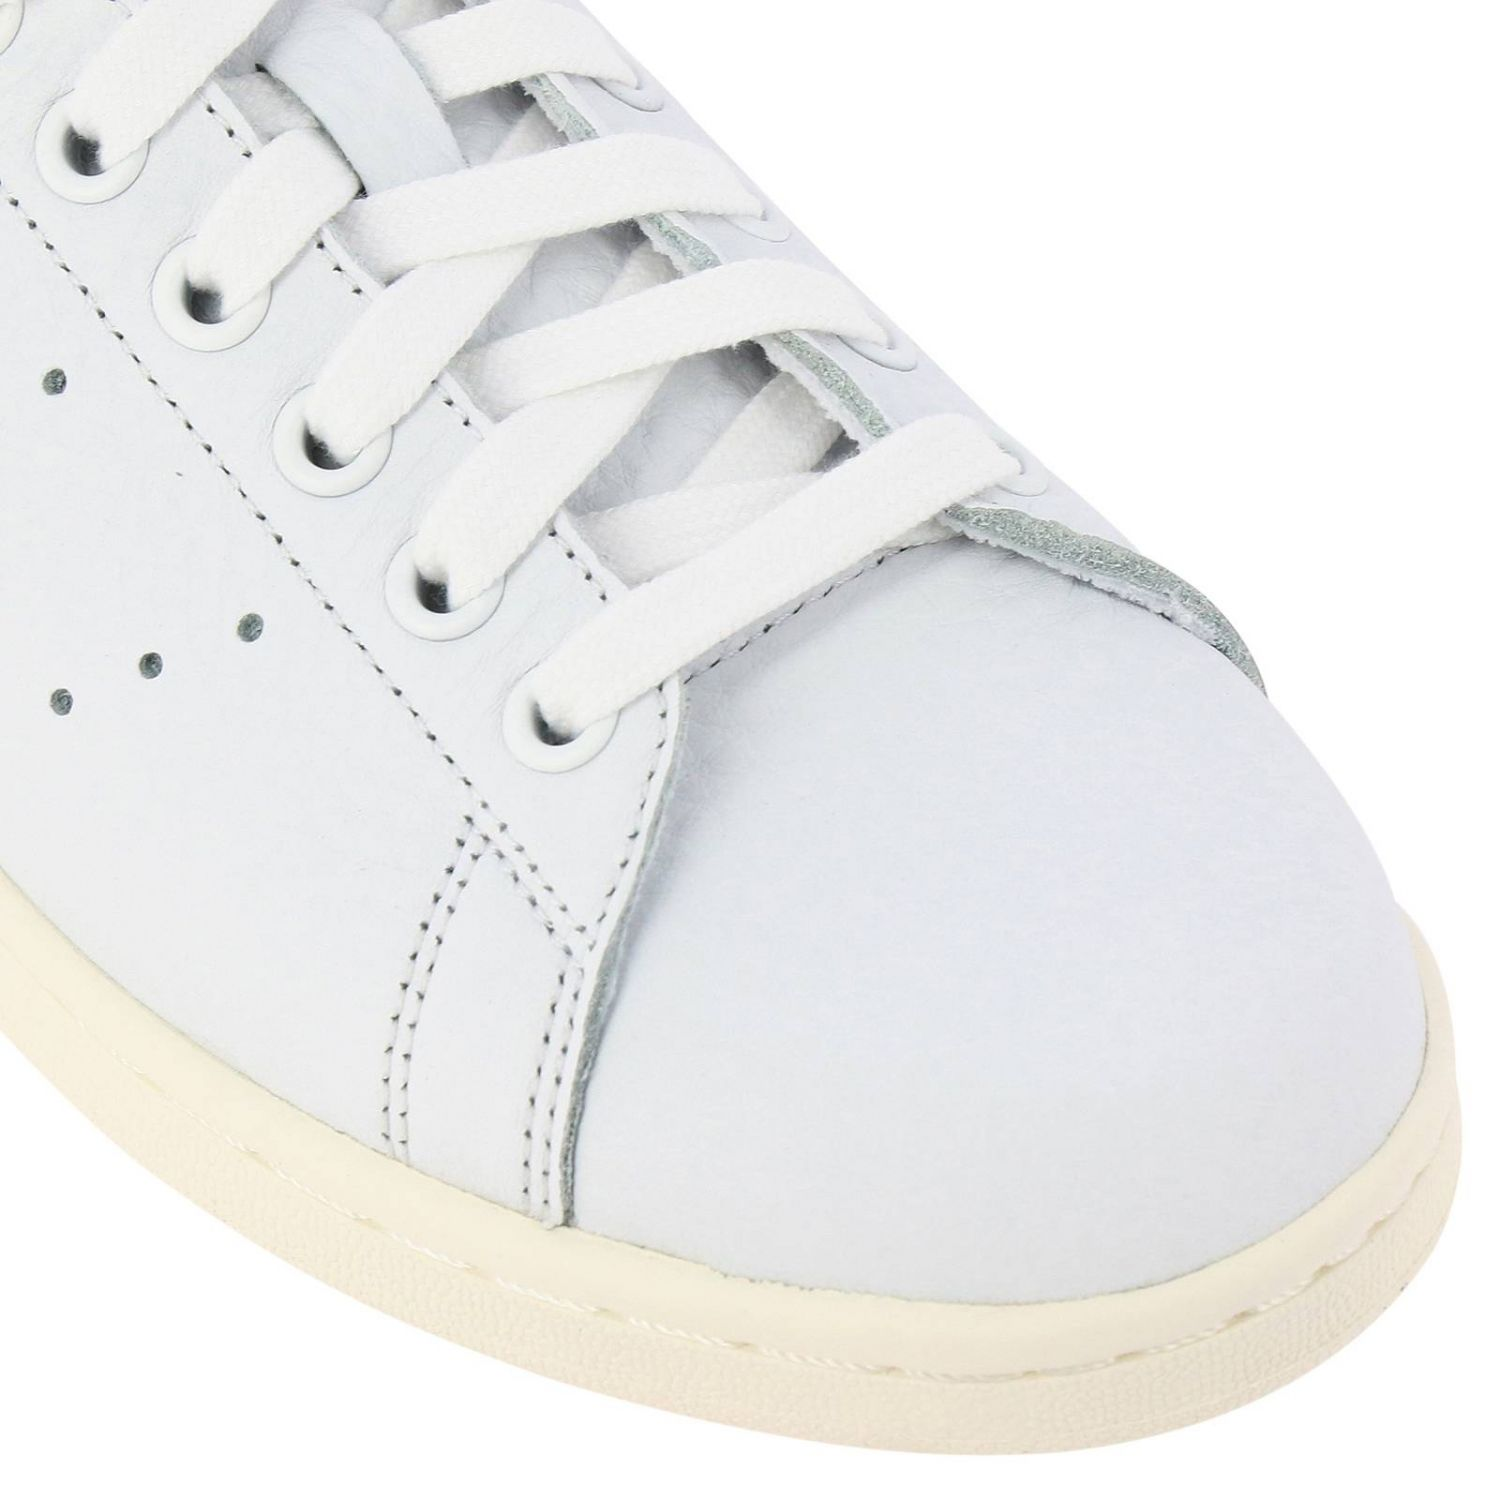 Sneakers Adidas Originals: Stan Smith Adidas Originals Sneakers in smooth leather white 3